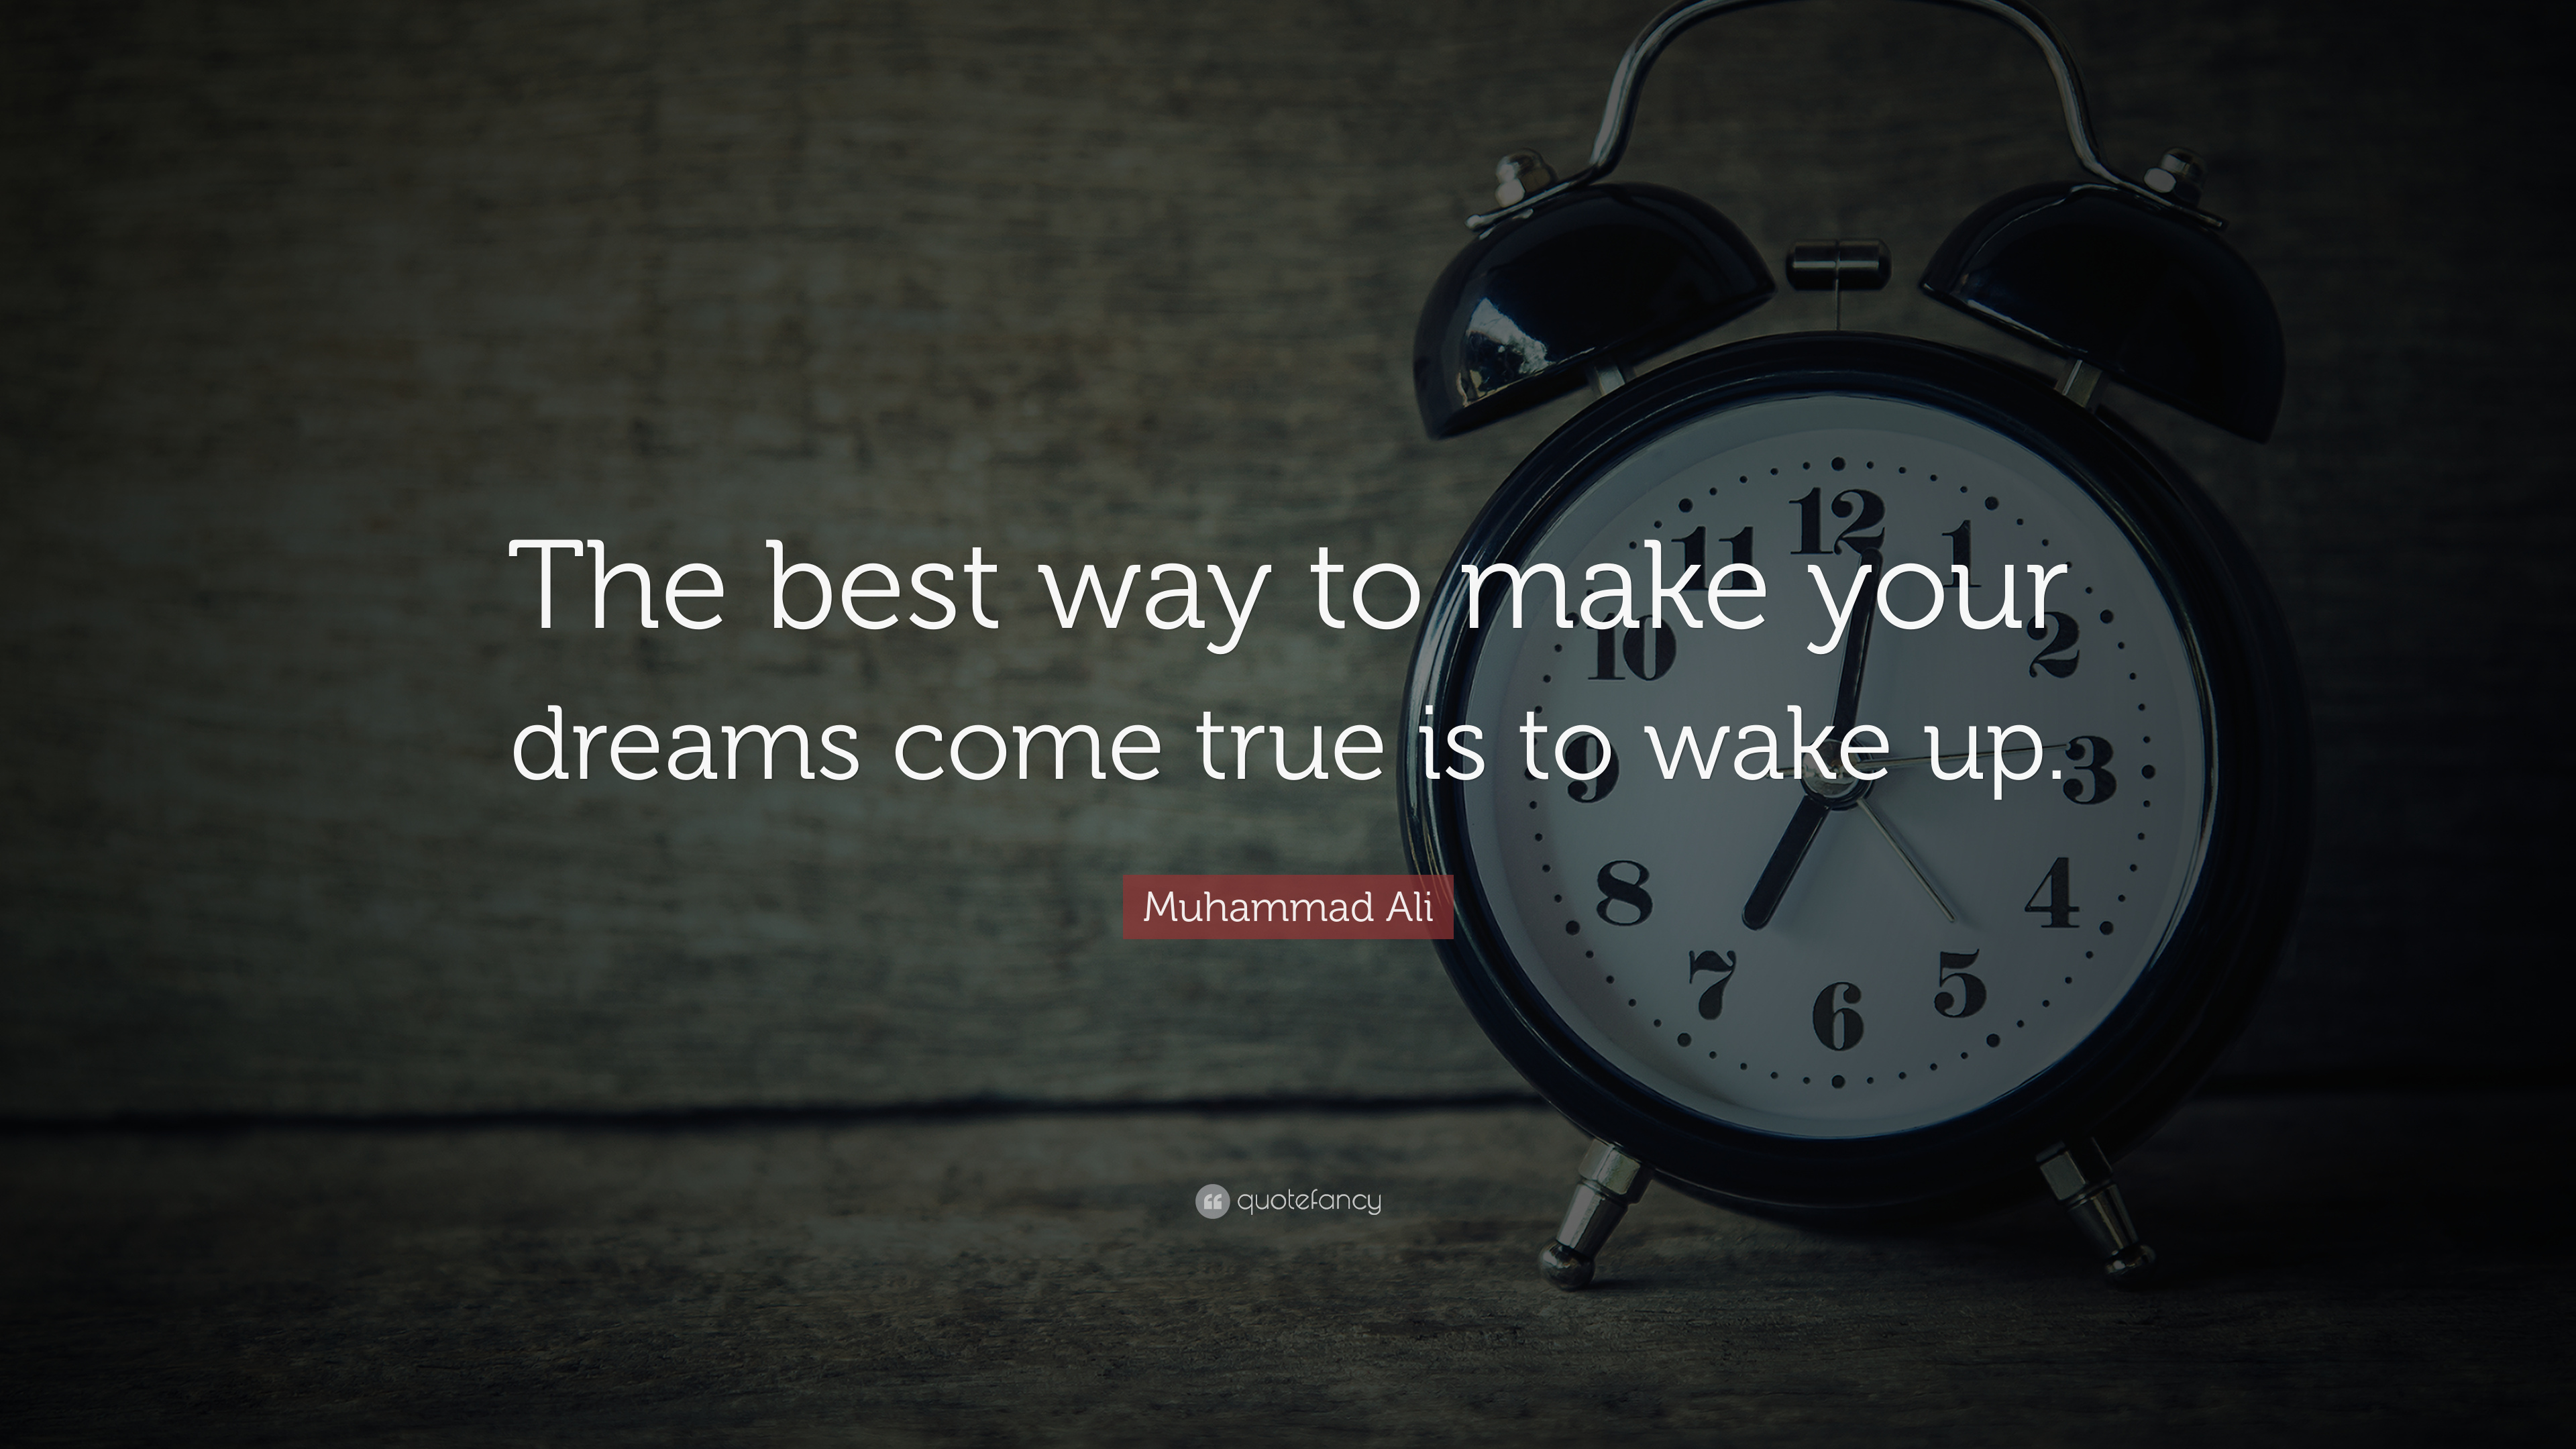 how to make your dreams come true fast